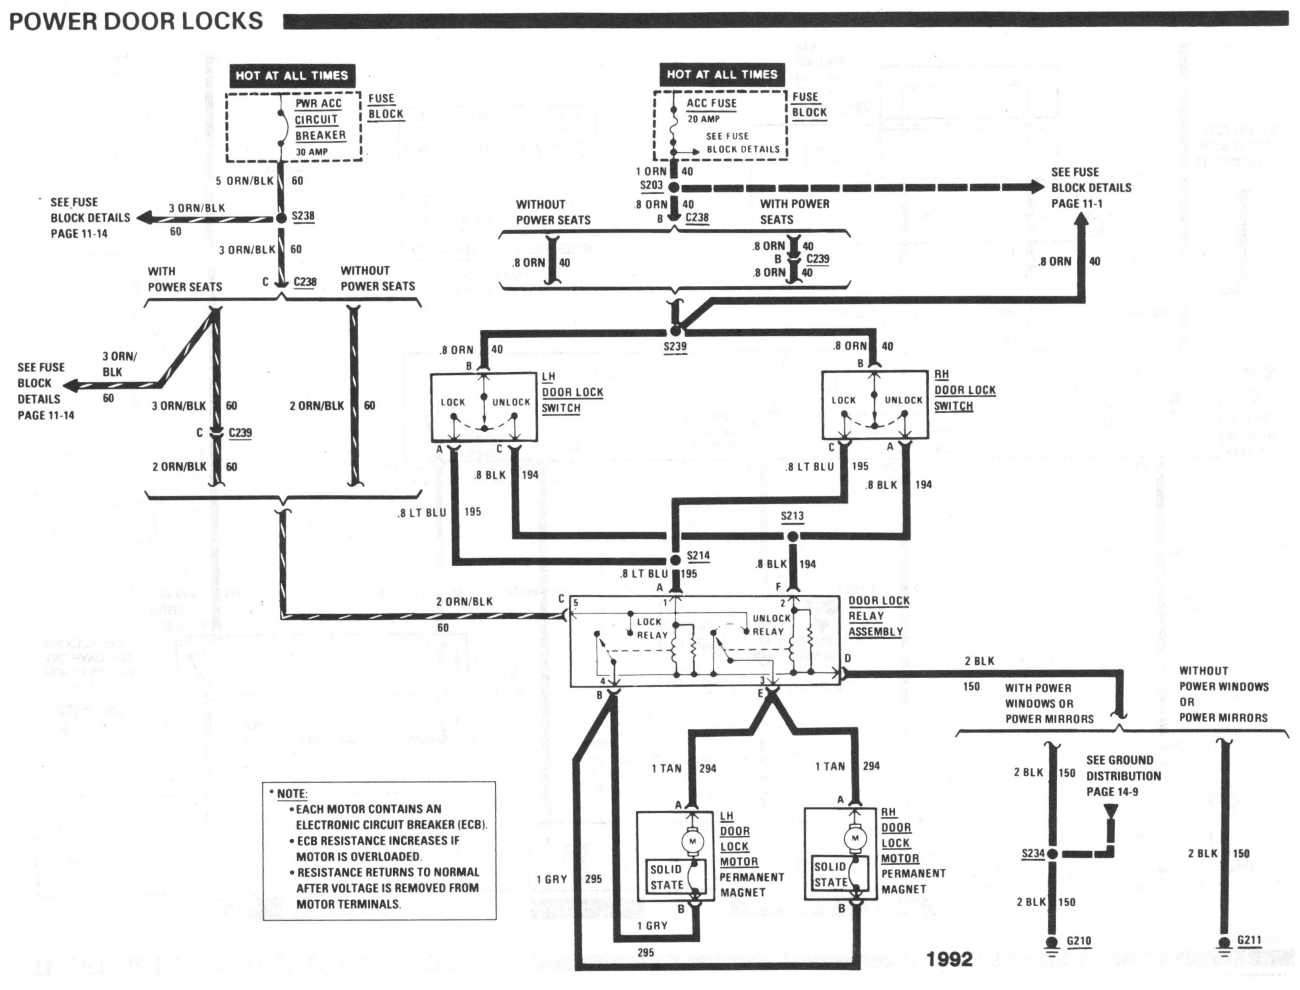 1998 Ford E350 Wiring Diagram Power Door Locks electrical ... Citroen Pico Central Locking Wiring Diagram on pico cable, pico with no equipment, pico electrical products, pico connector, pico distributors, pico eugene oregon, pico transformer,